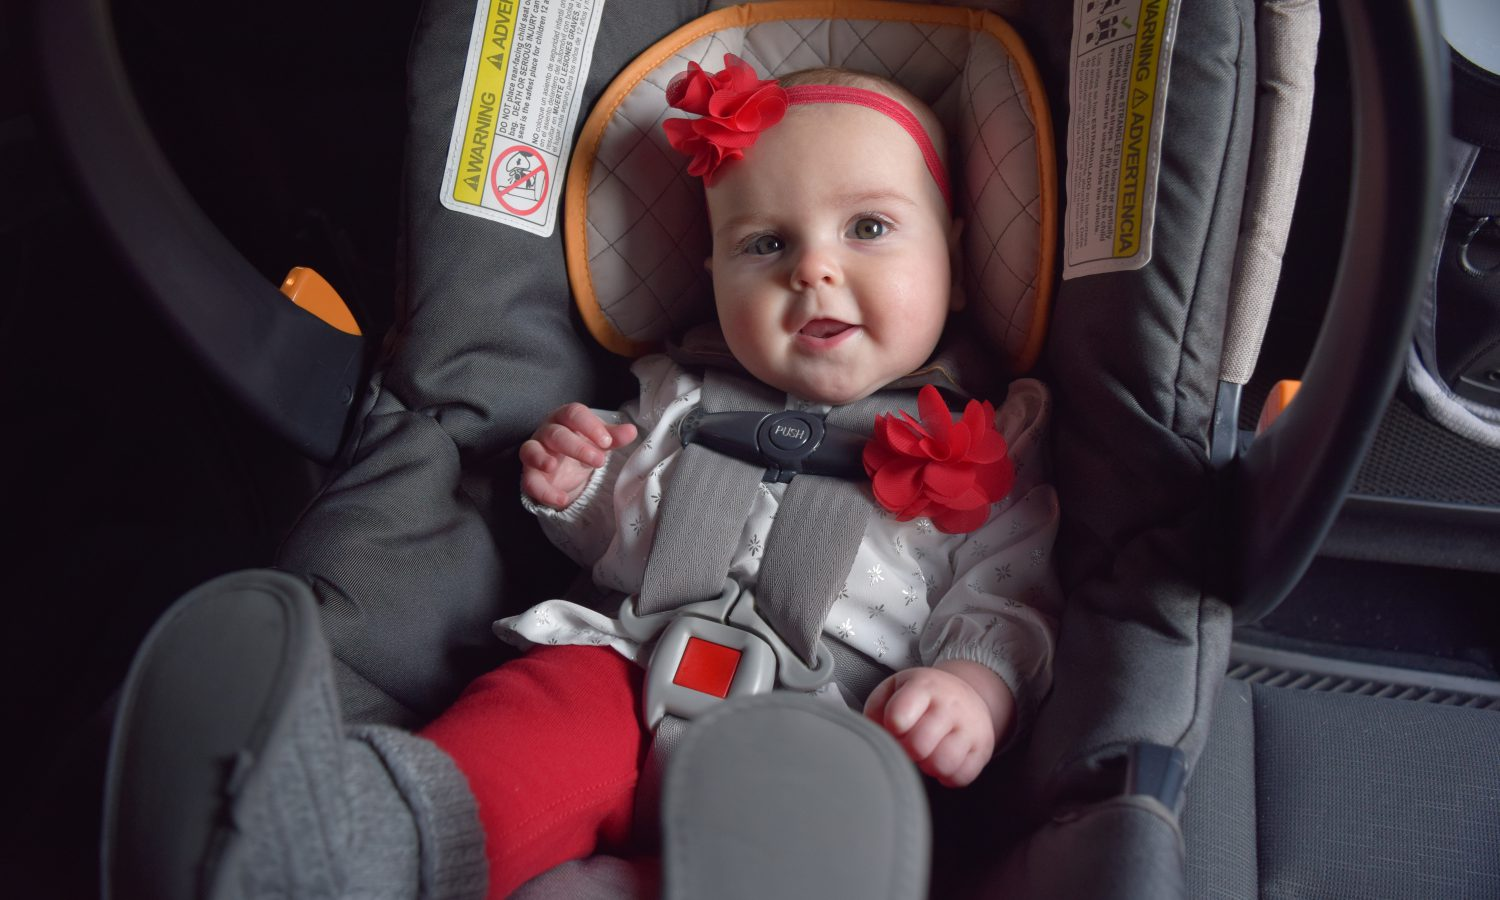 Child Car Seat Usa Let S Talk Turkey Buckle Up For Life Releases Must Know Car